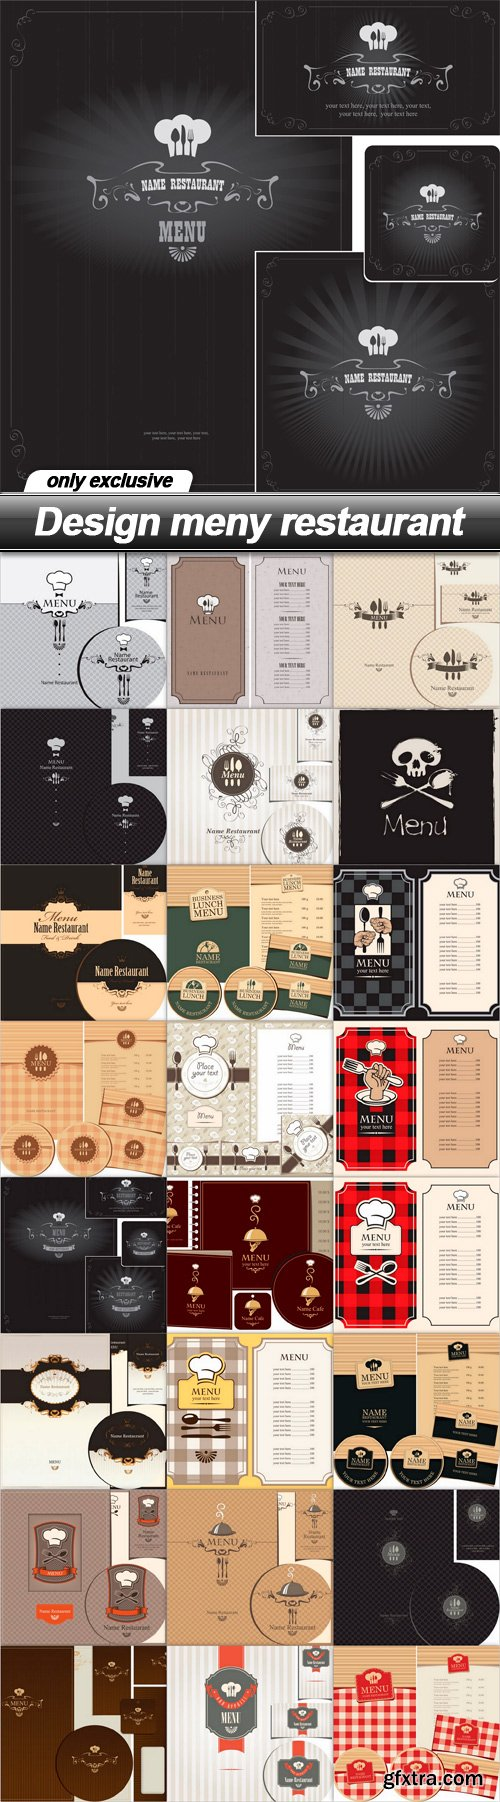 Design meny restaurant - 25 EPS